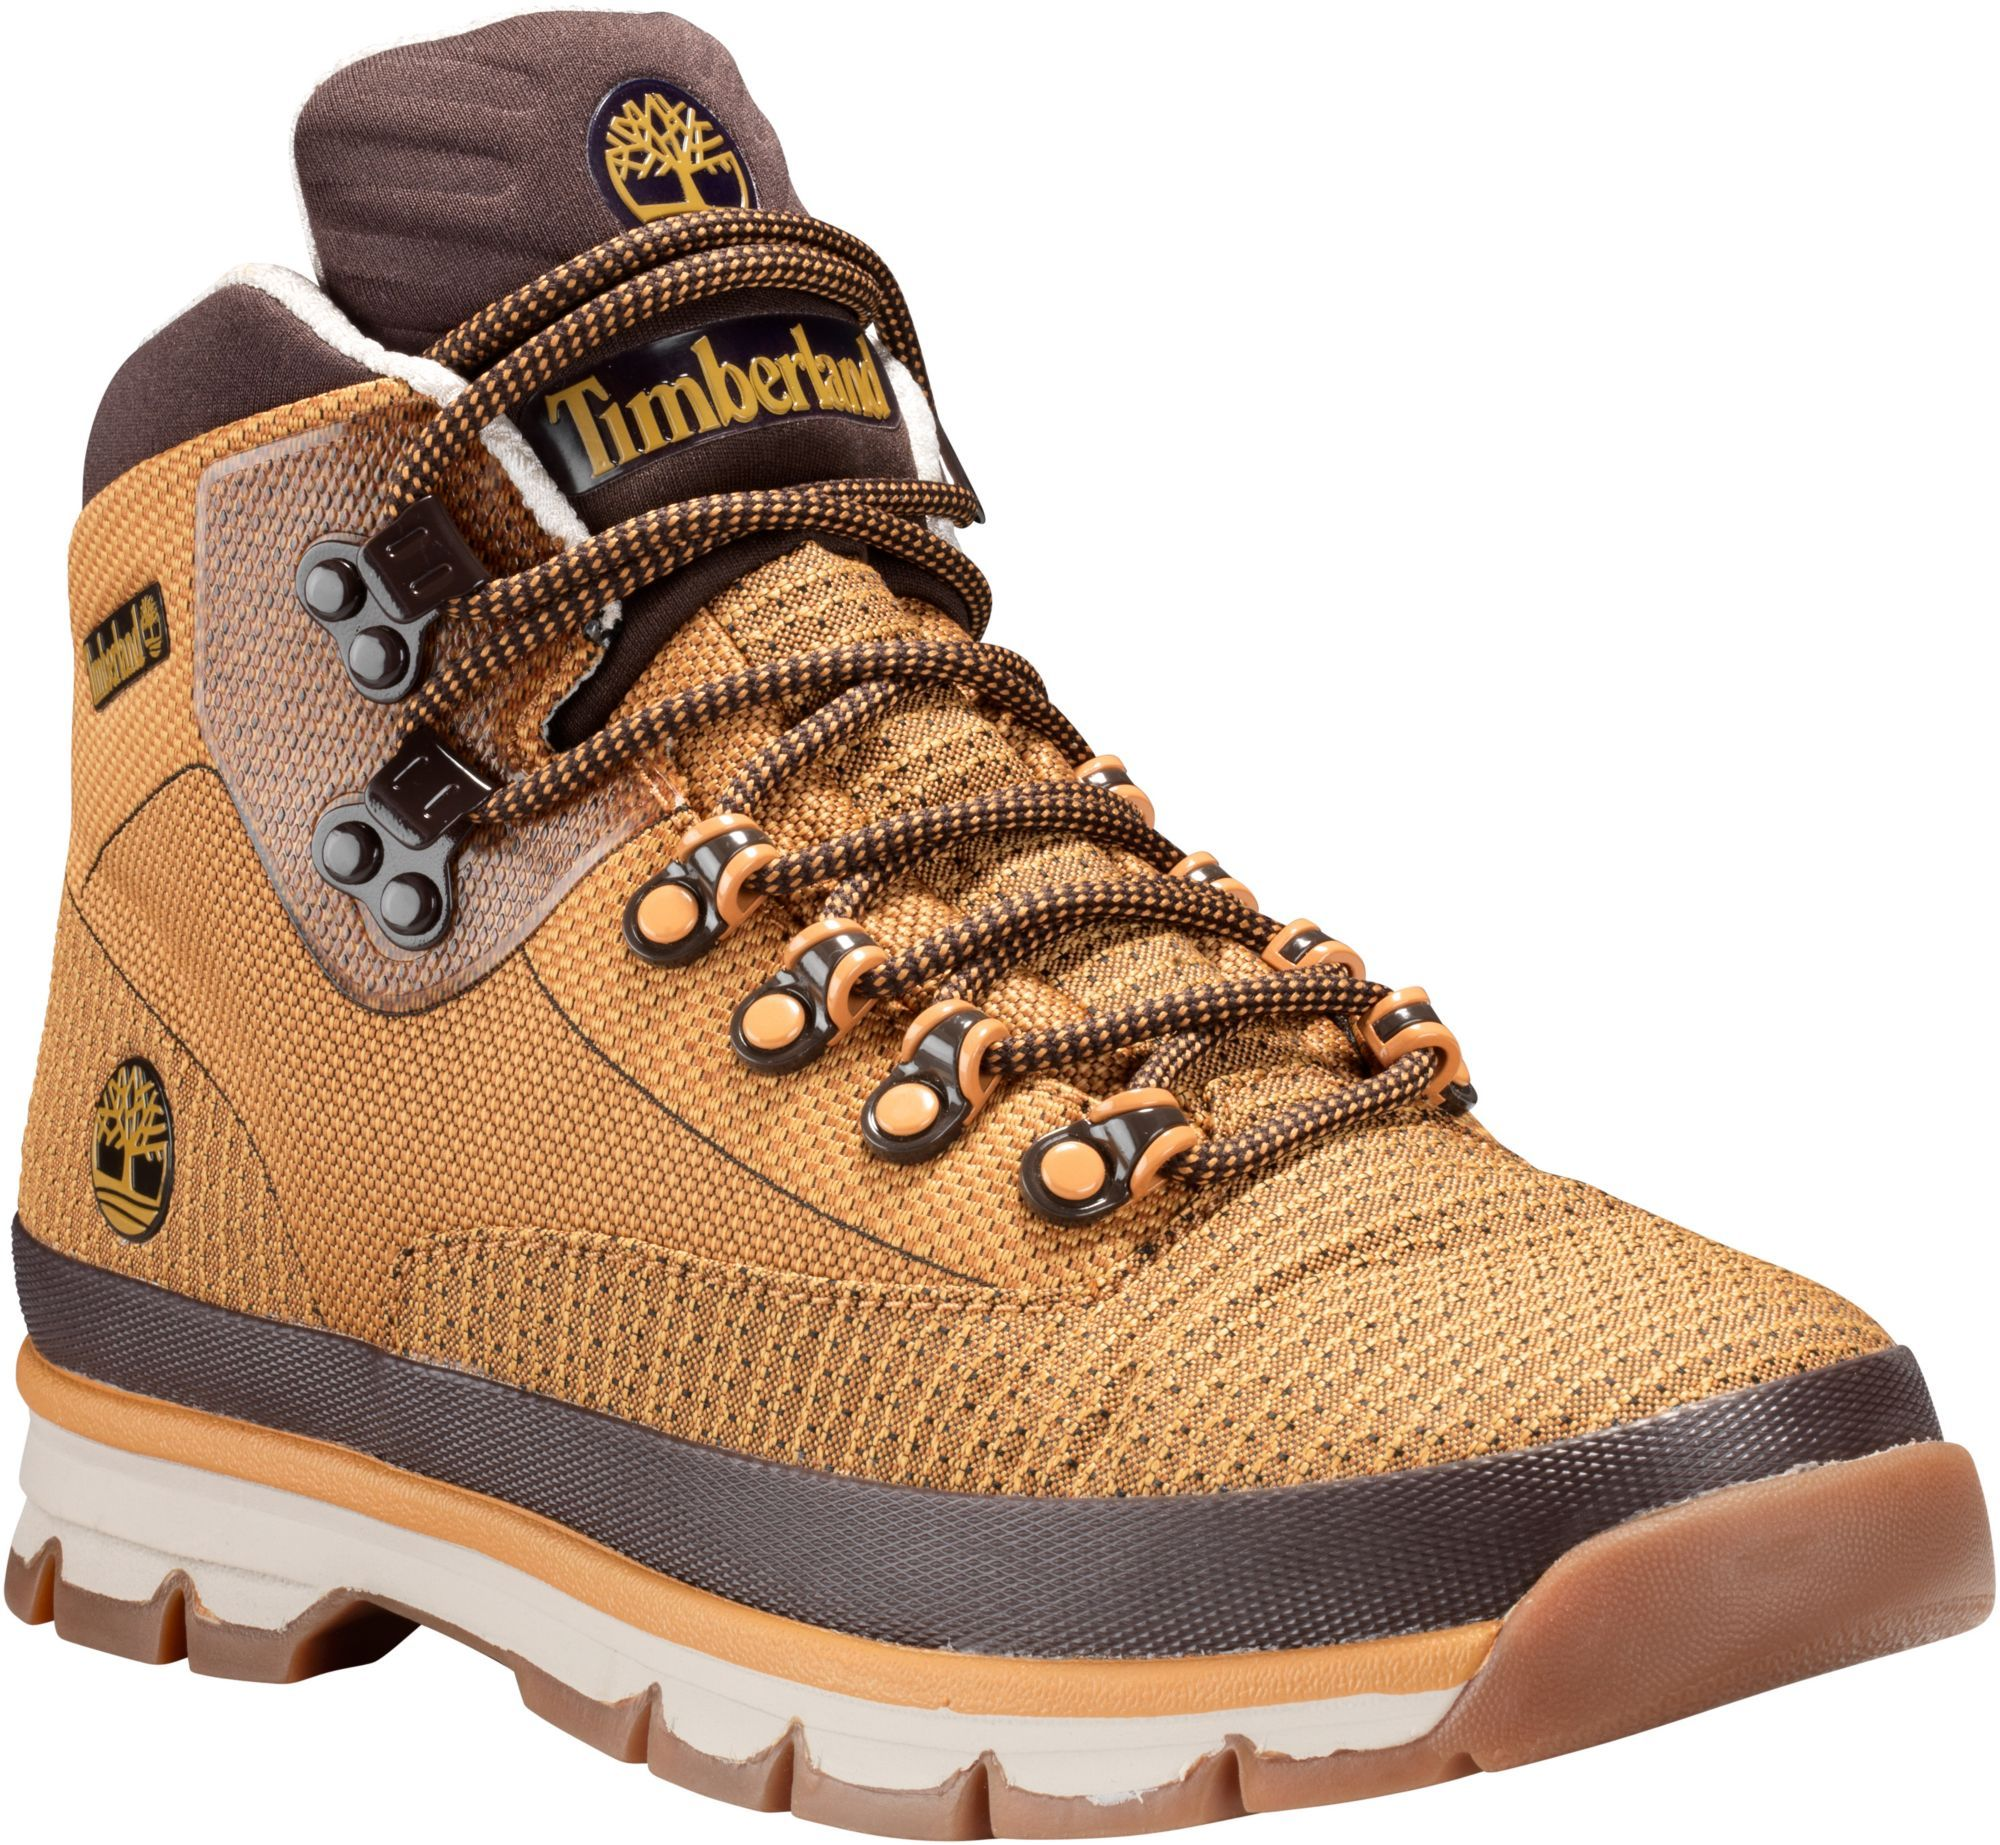 Timberland Men s Jacquard Euro Hiker Hiking Boots  bfbabfb814a